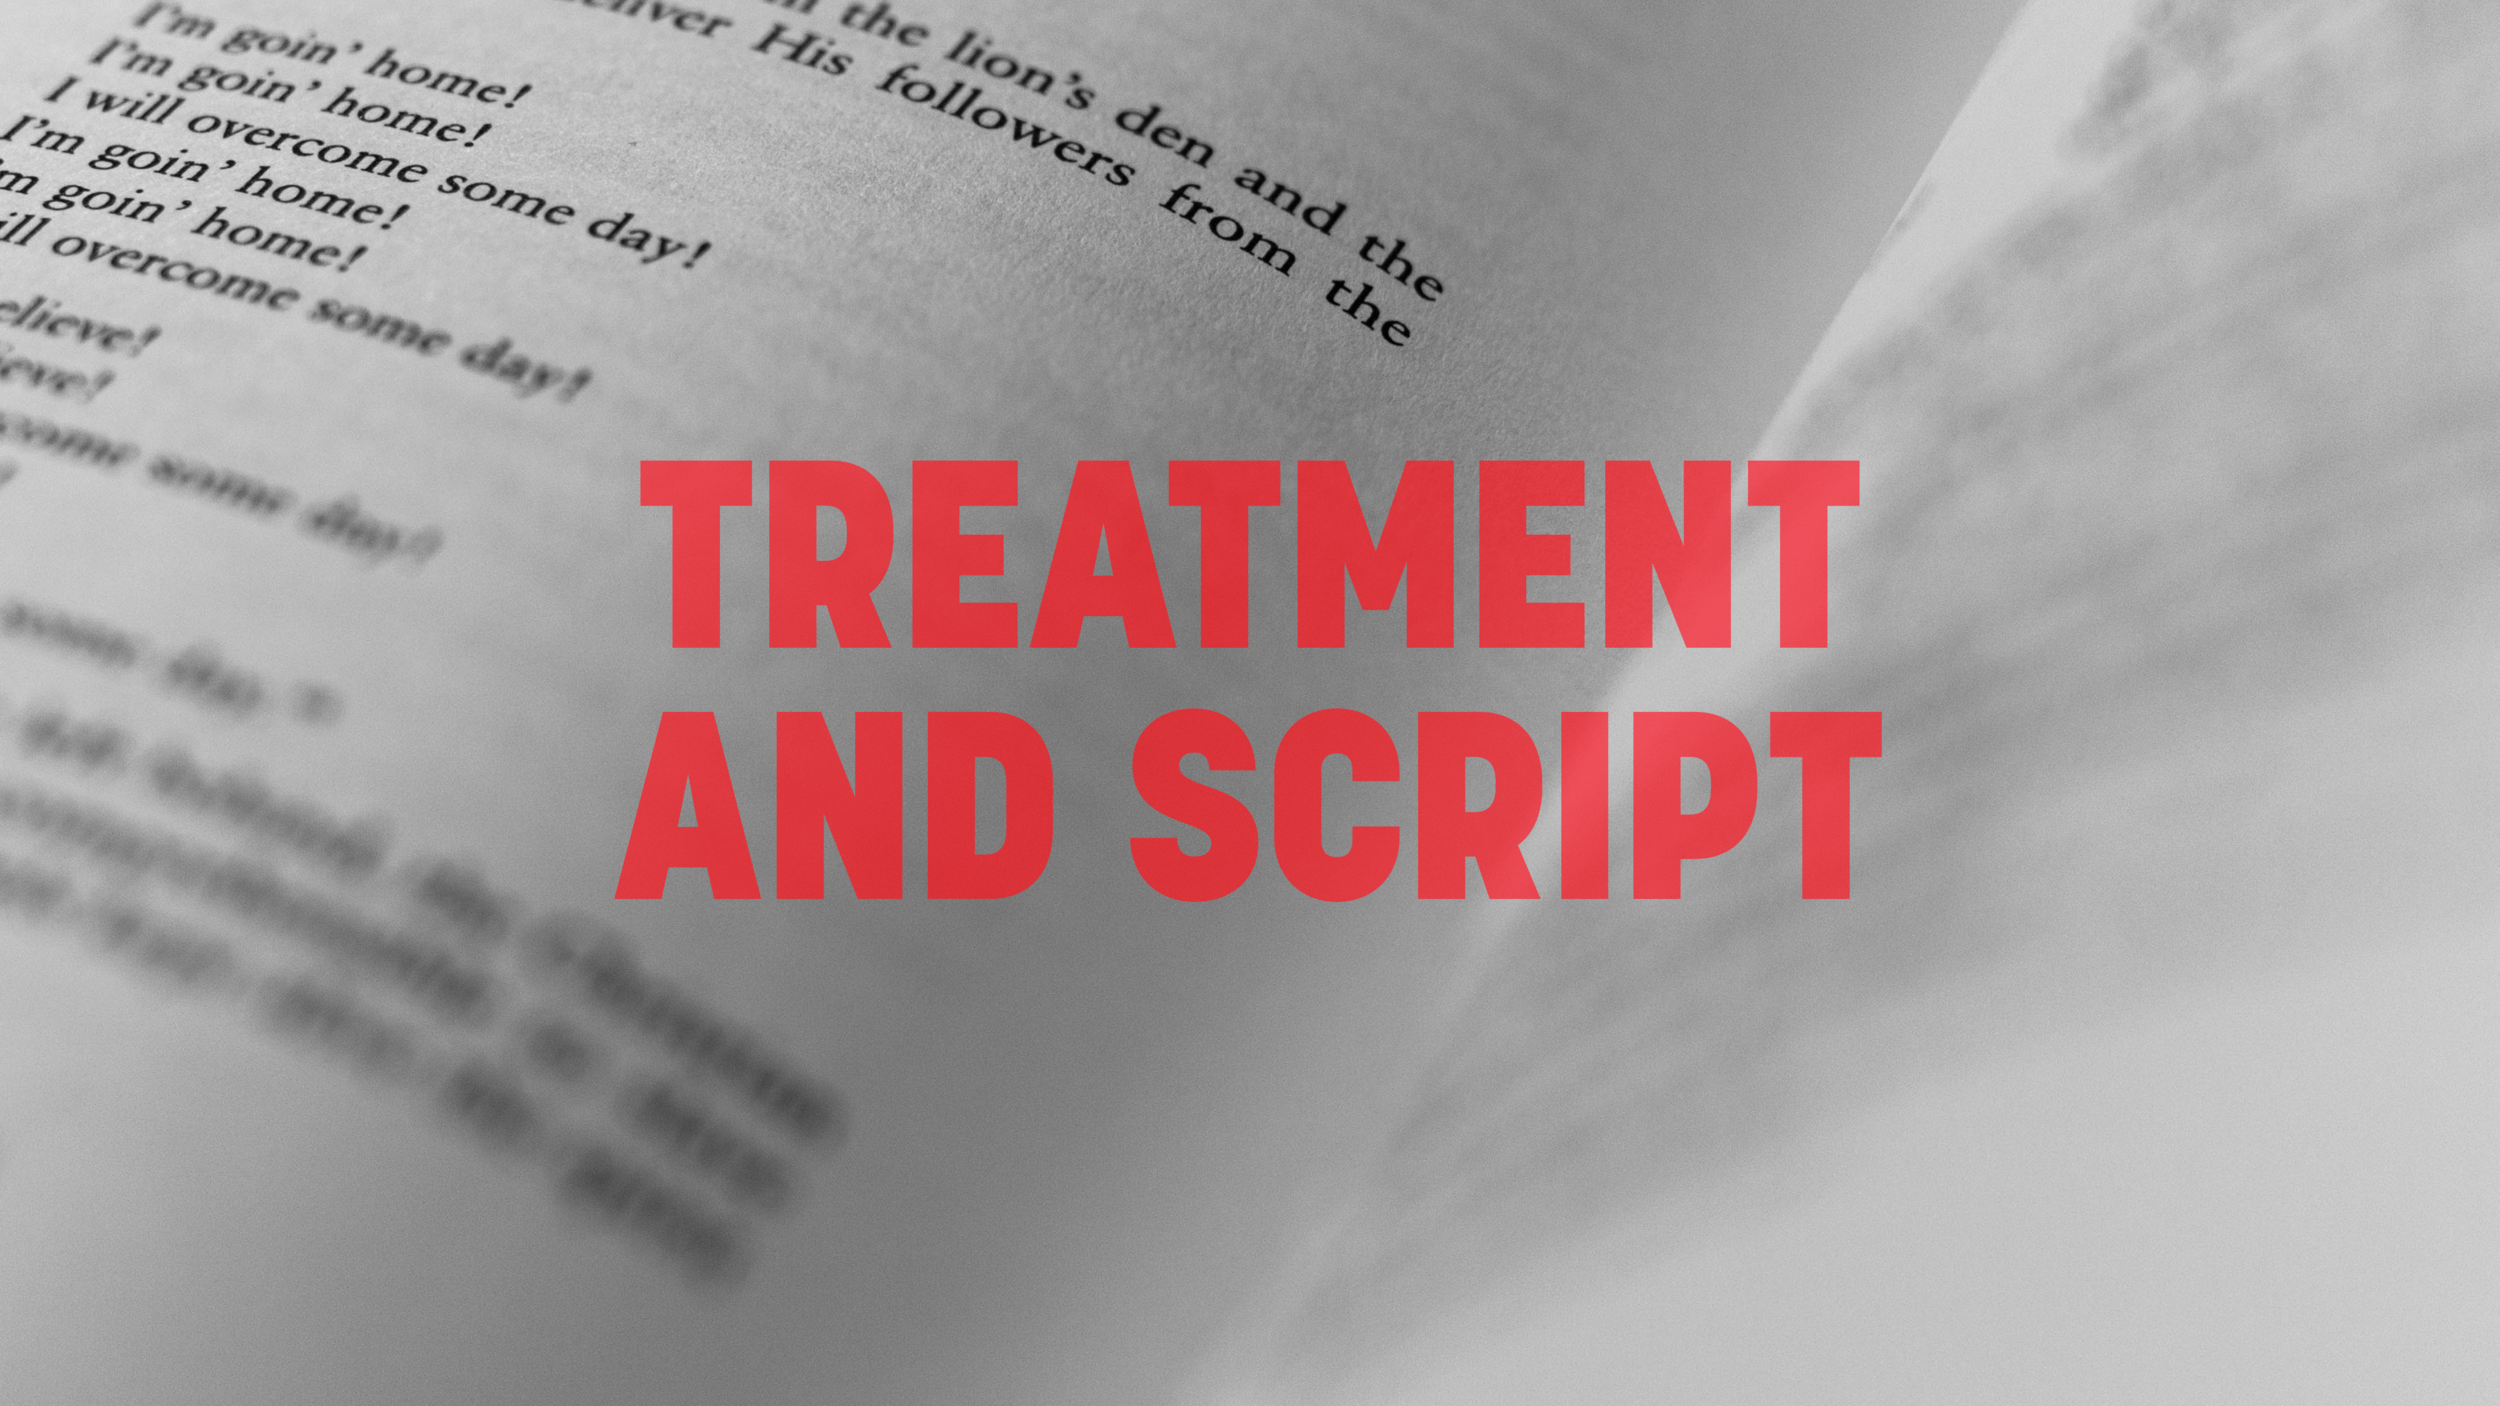 TREATMENT AND SCRIPT.png